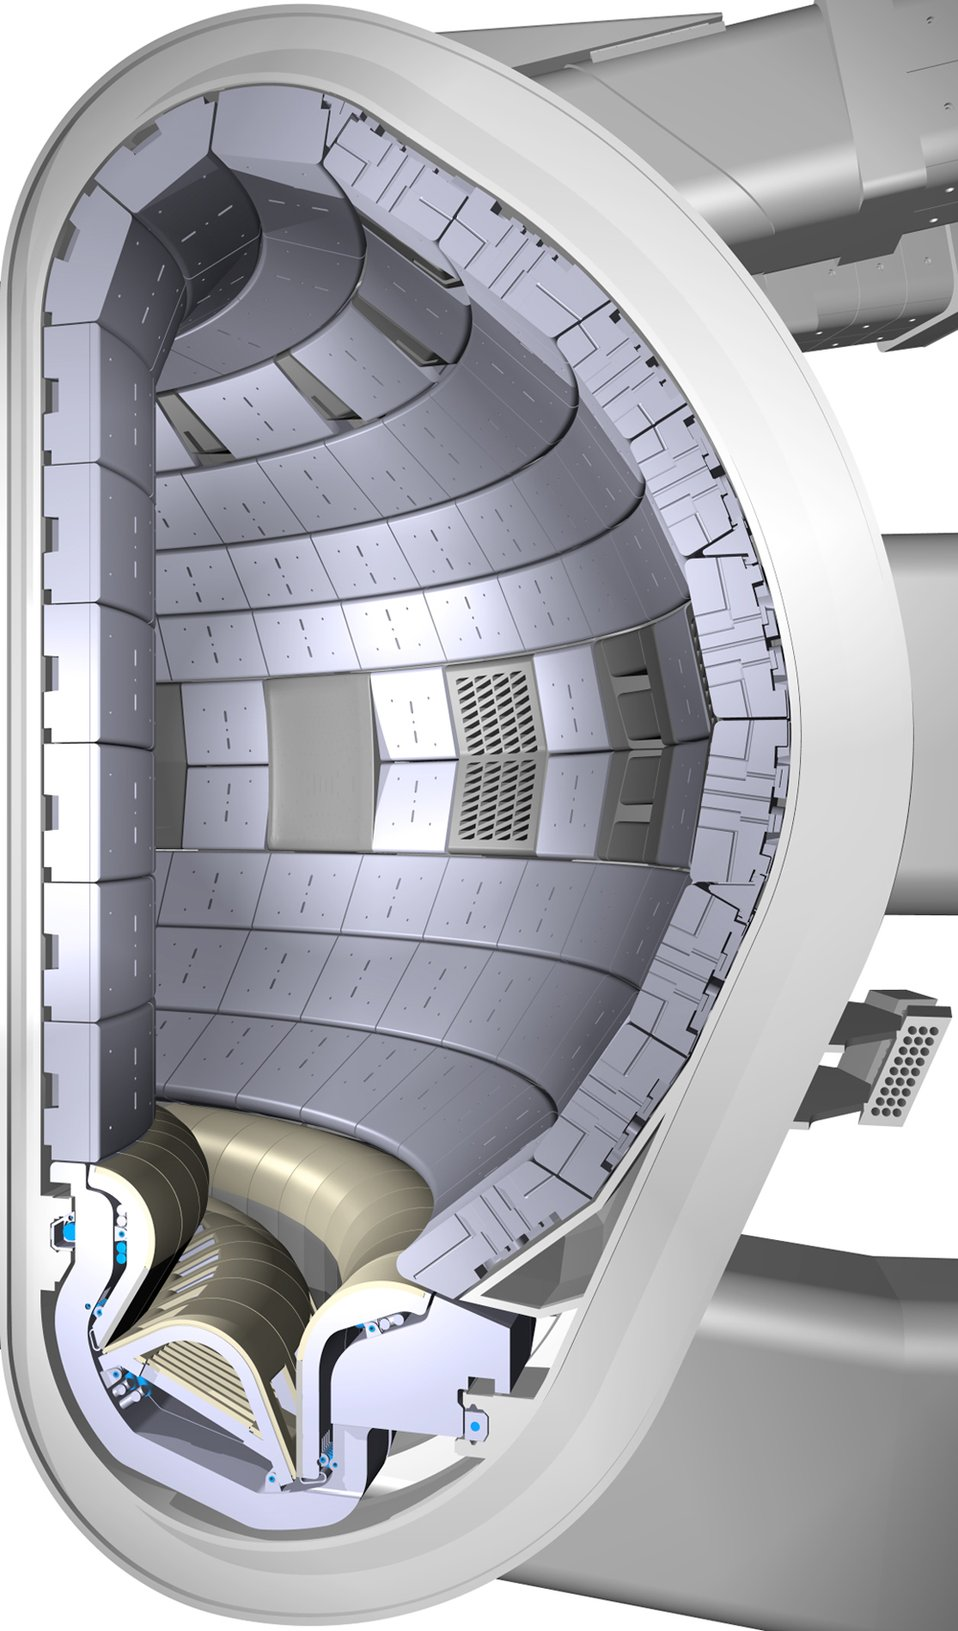 NIST Light Source Illuminates Fusion Power Diagnostics